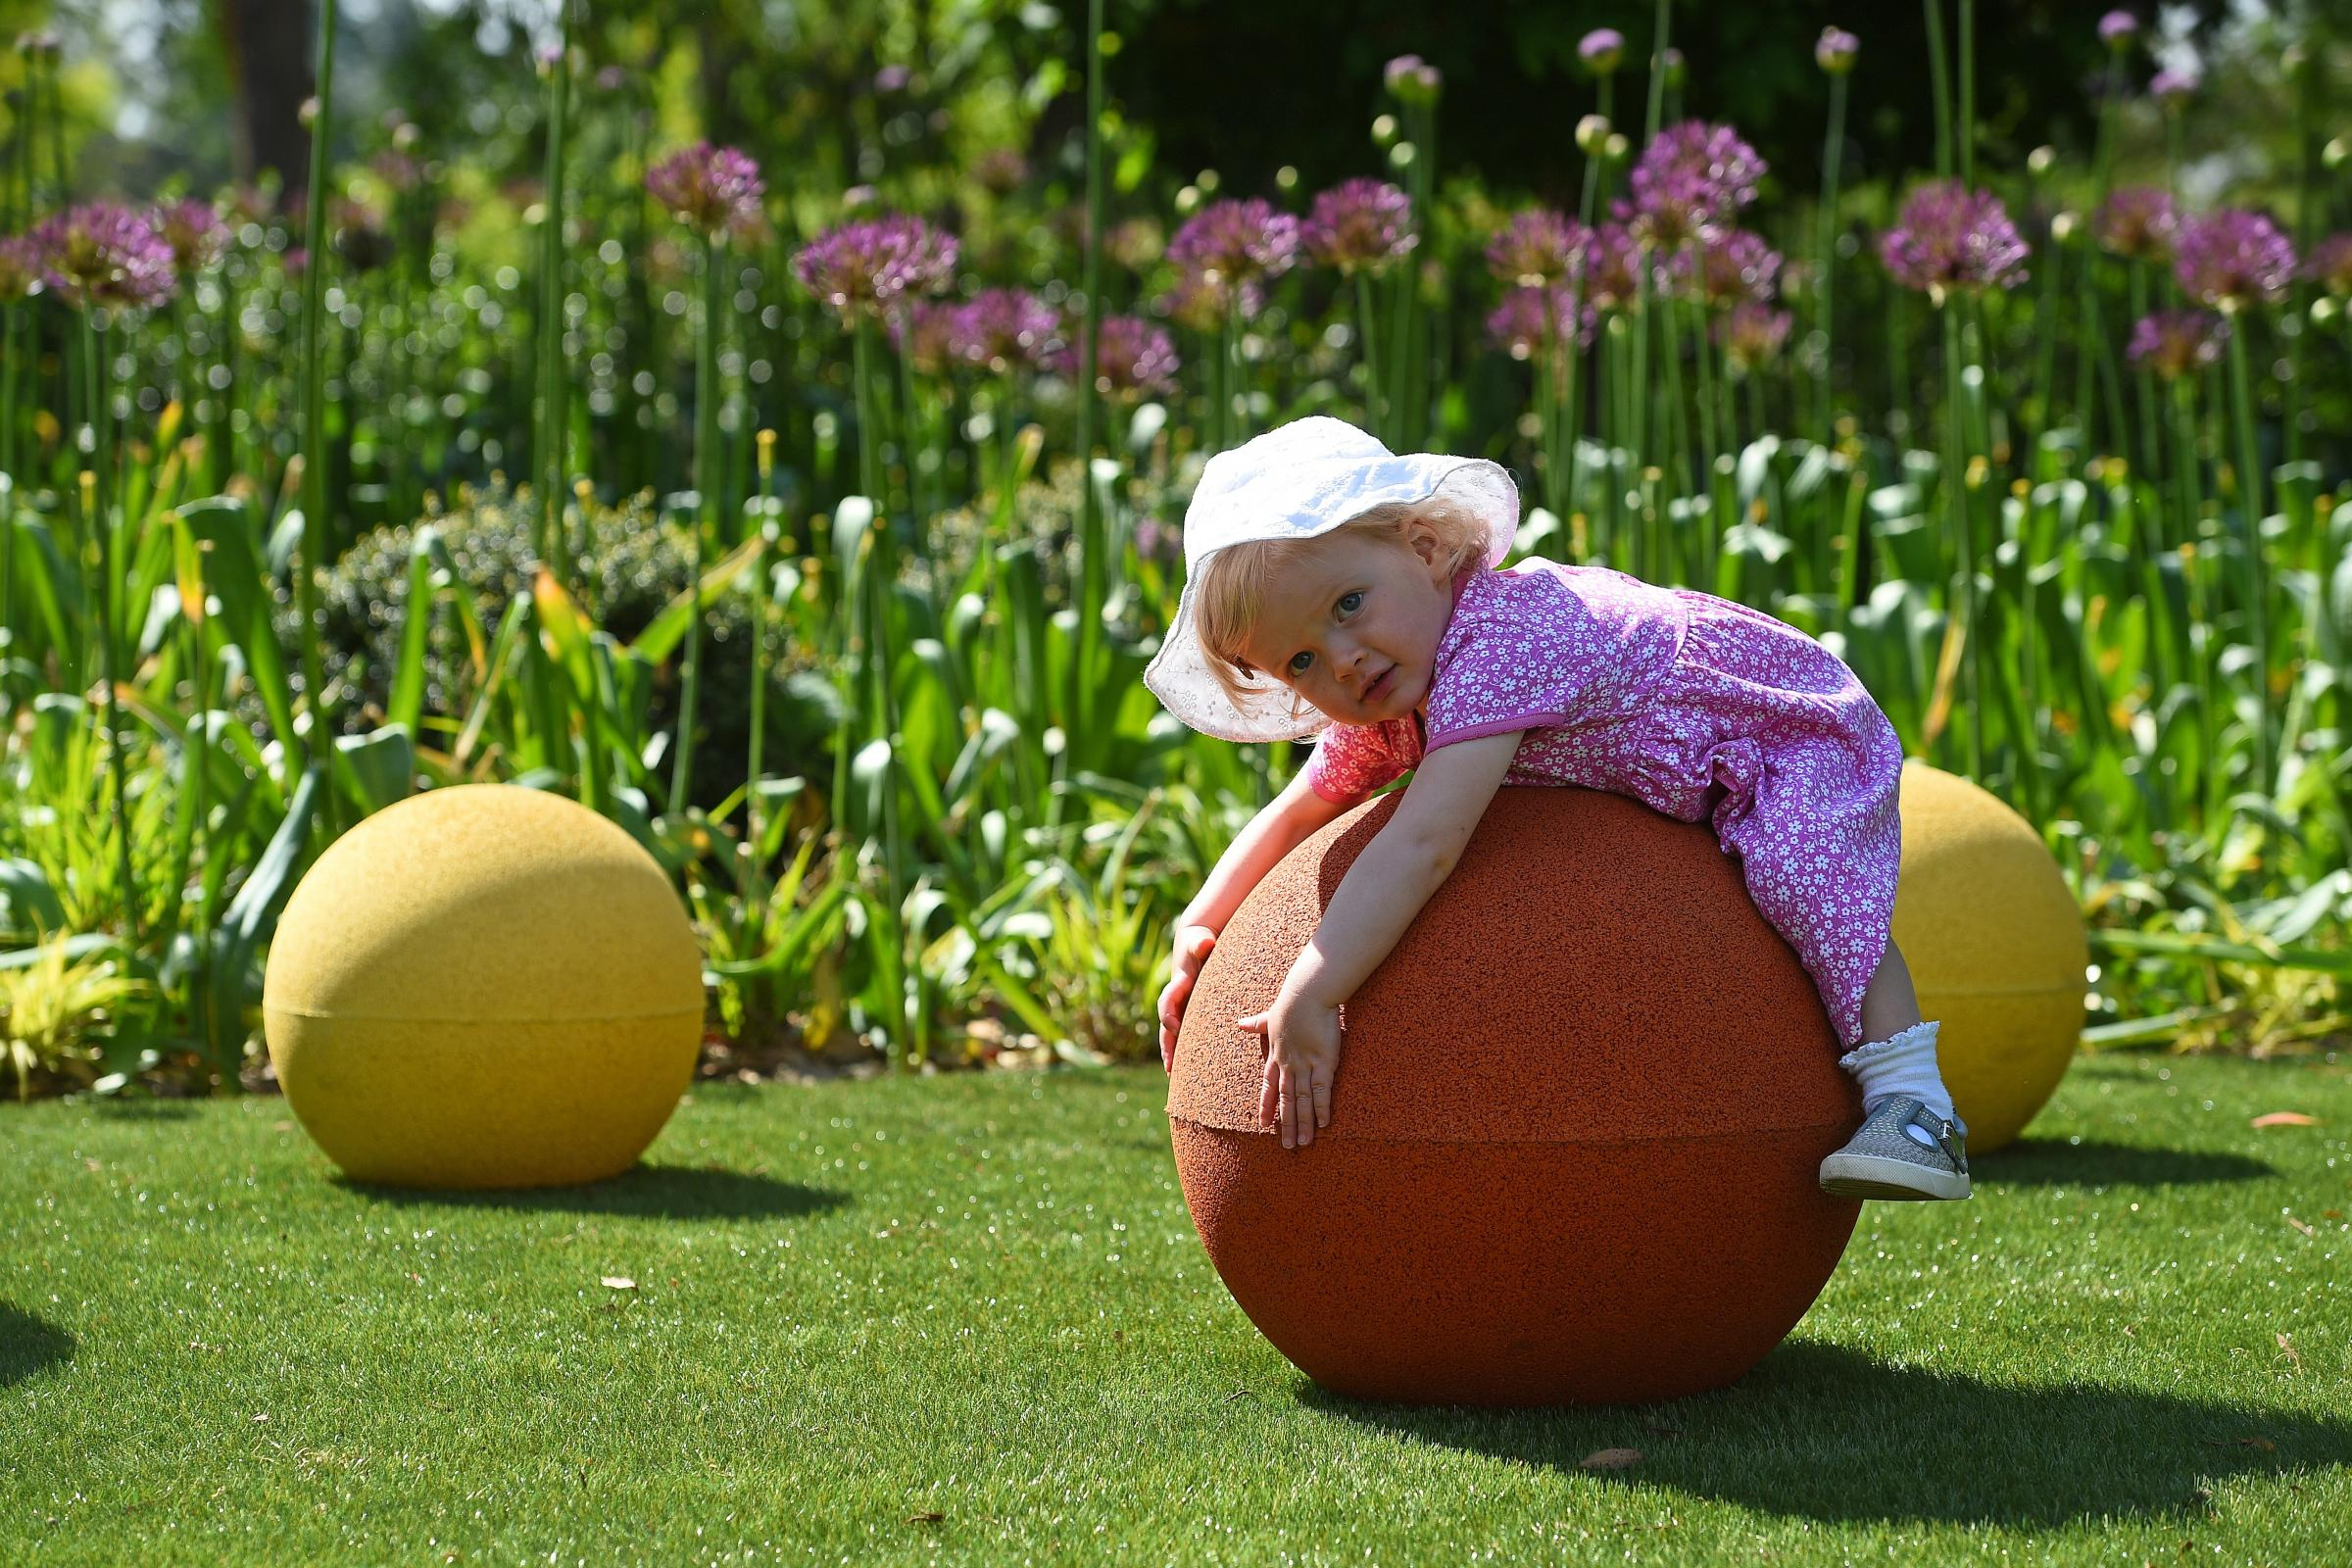 Toddler Martha White, playing on a giant ball in the new Children's Garden at Kew Gardens in Surrey